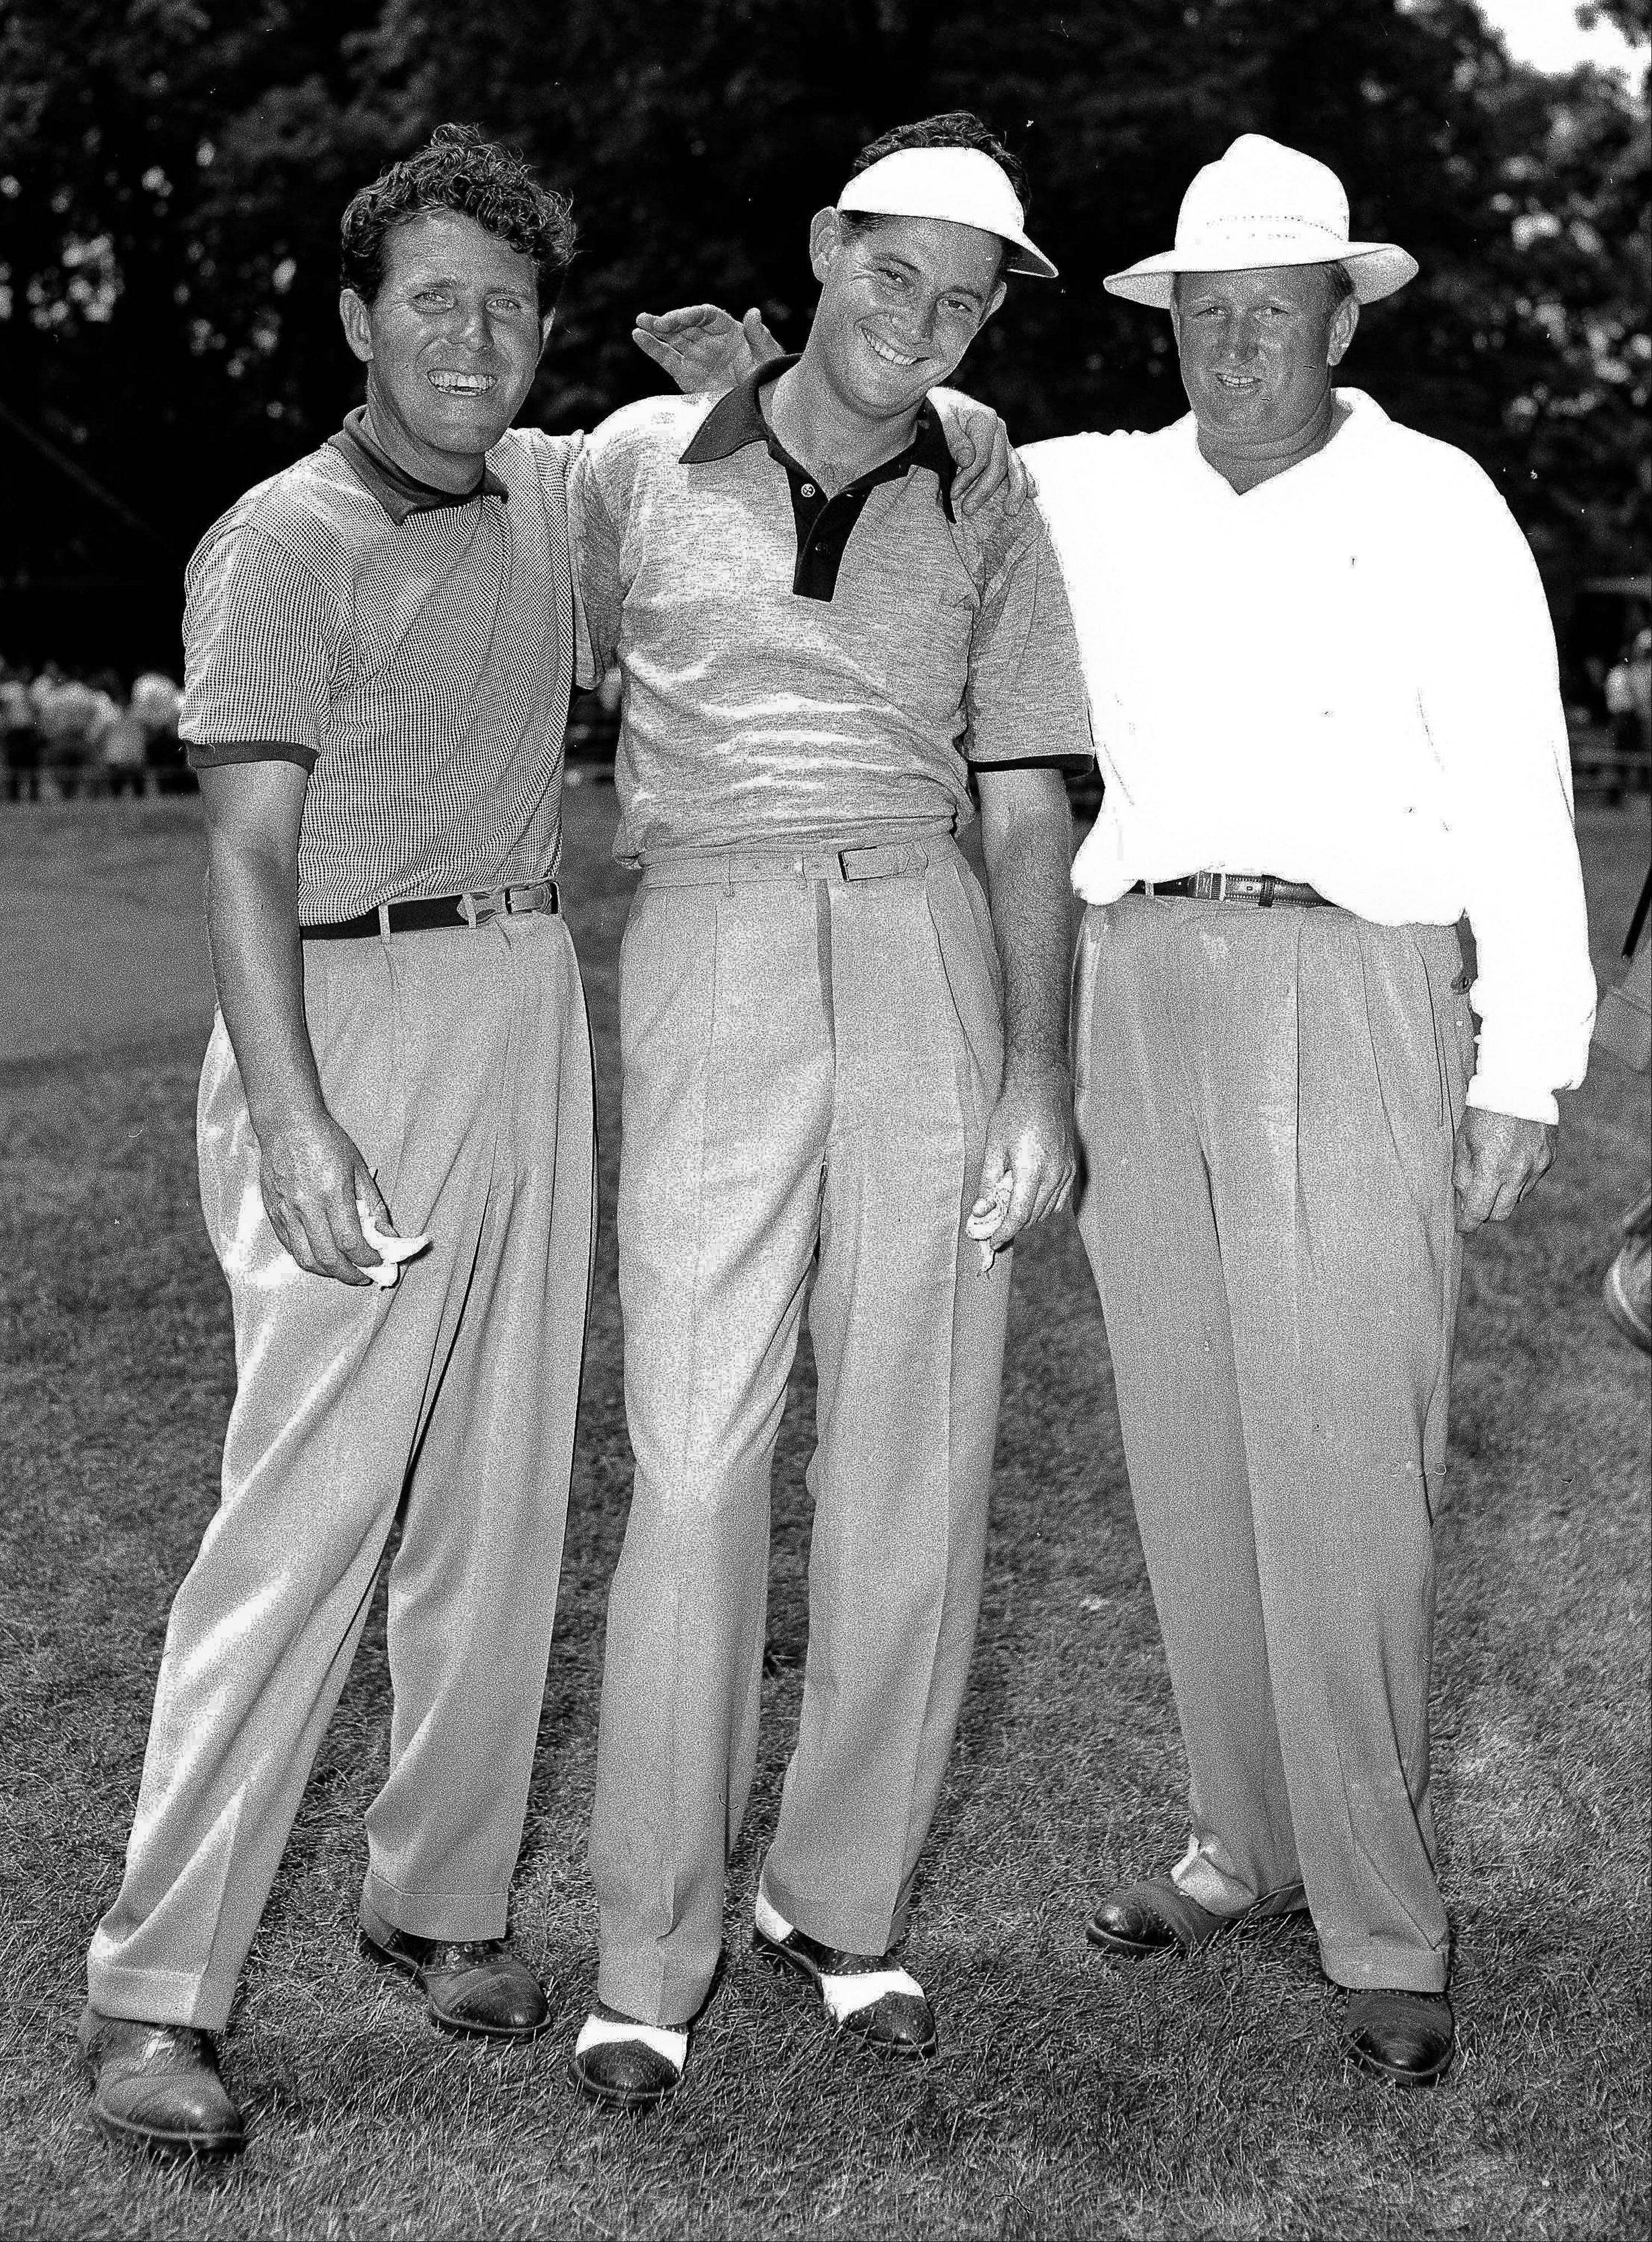 Cary Middlecoff, center, Memphis, Tenn., and Clayton Heafner, right, Charlotte, N.C., were tied up going down the final nine holes of the National Open golf tournament at Chicago�s Medinah Country Club, Illinois on June 11, 1949. O�Neal (Buck) White, left, Greenwood, Miss., was only two strokes behind leaders� pace at the 63rd hole.